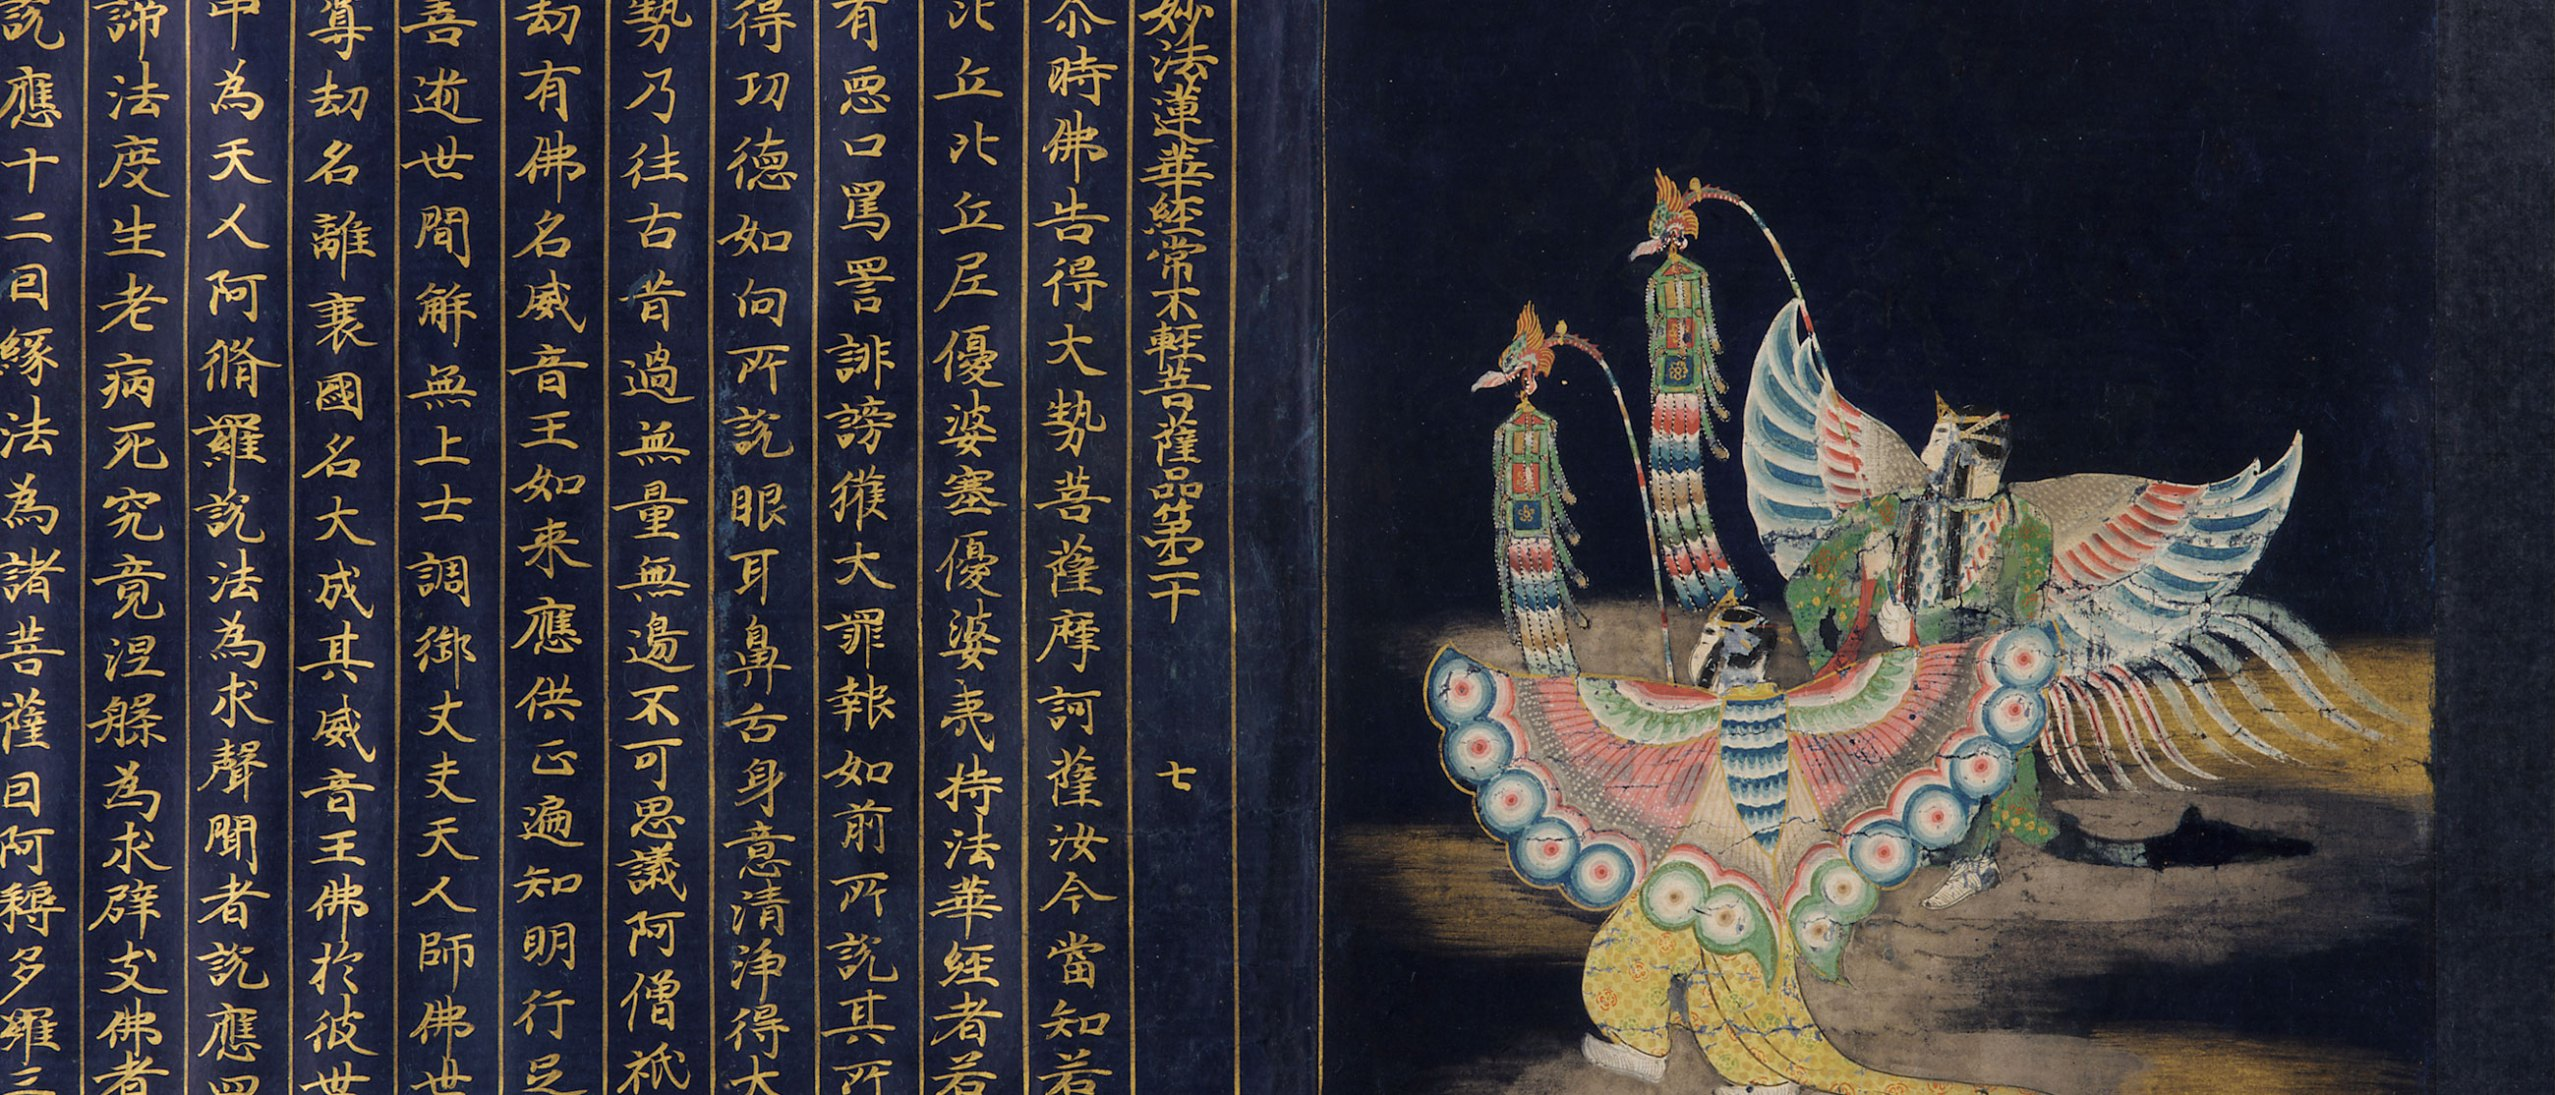 Detail from the Lotus Sutra handscroll showing text and an image, F1980.199